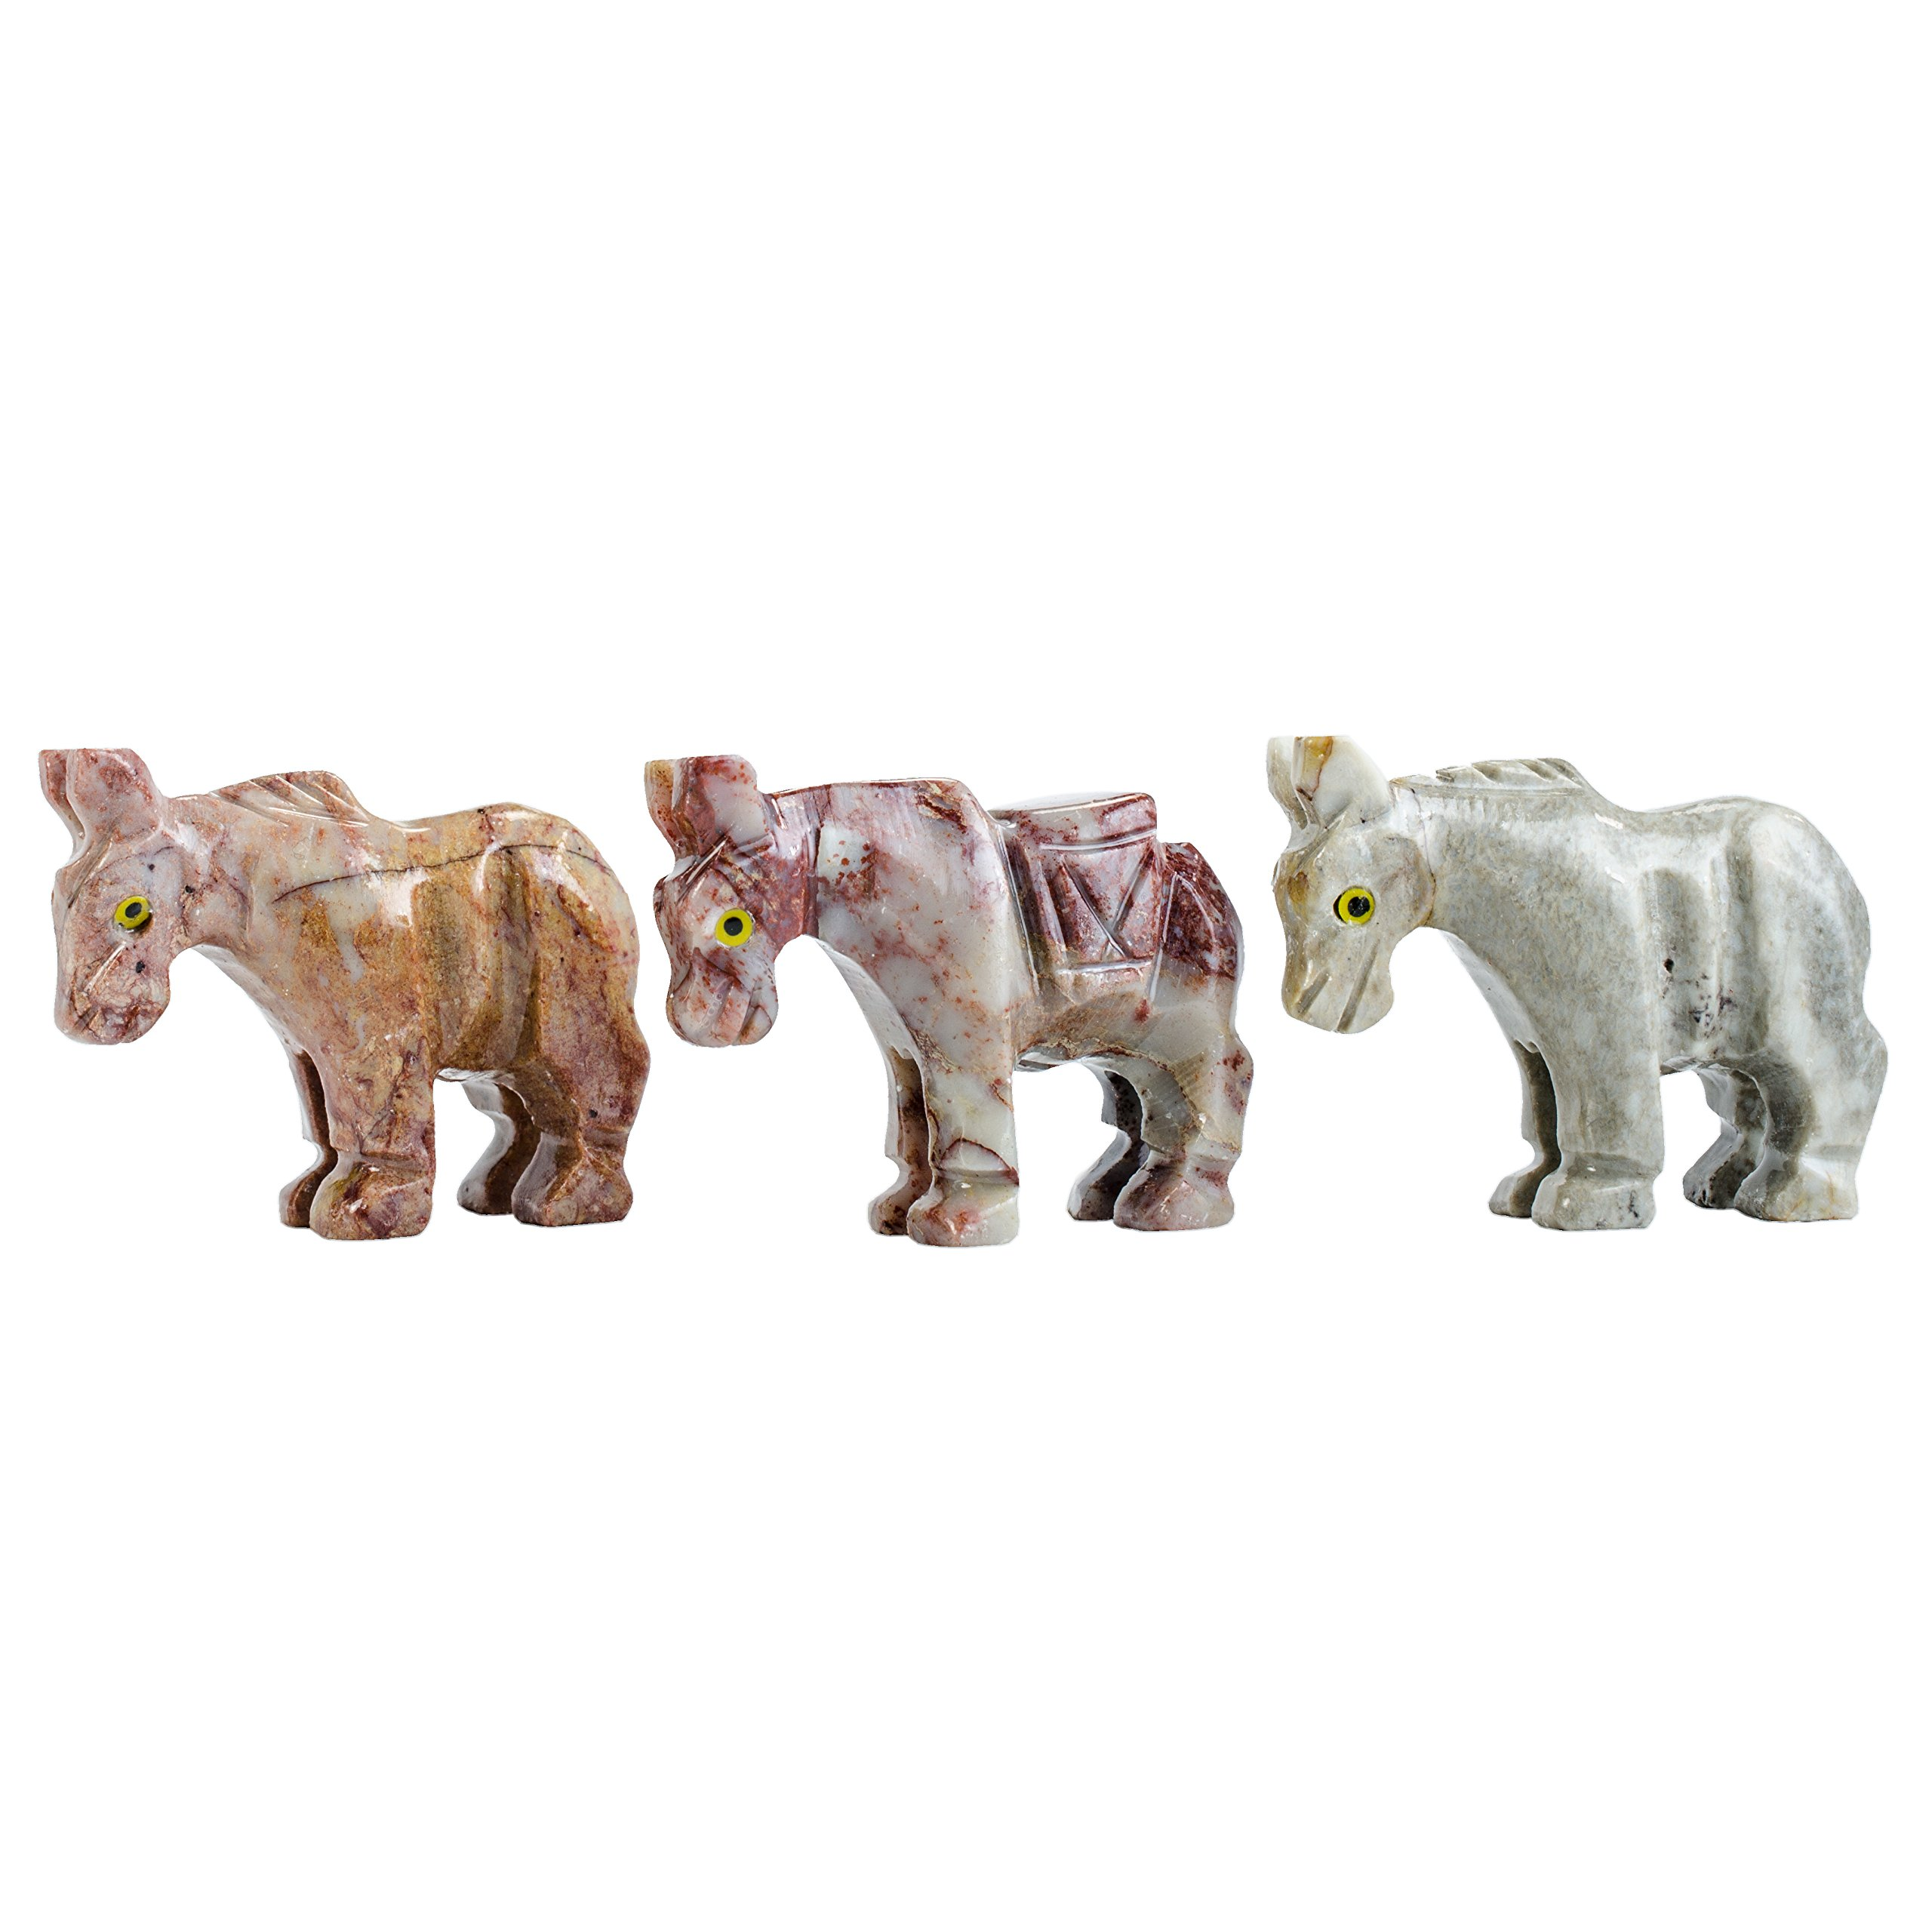 Digging Dolls : 30 pcs Artisan Donkey Collectable Animal Figurine - Party Favors, Stocking Stuffers, Gifts, Collecting and More!